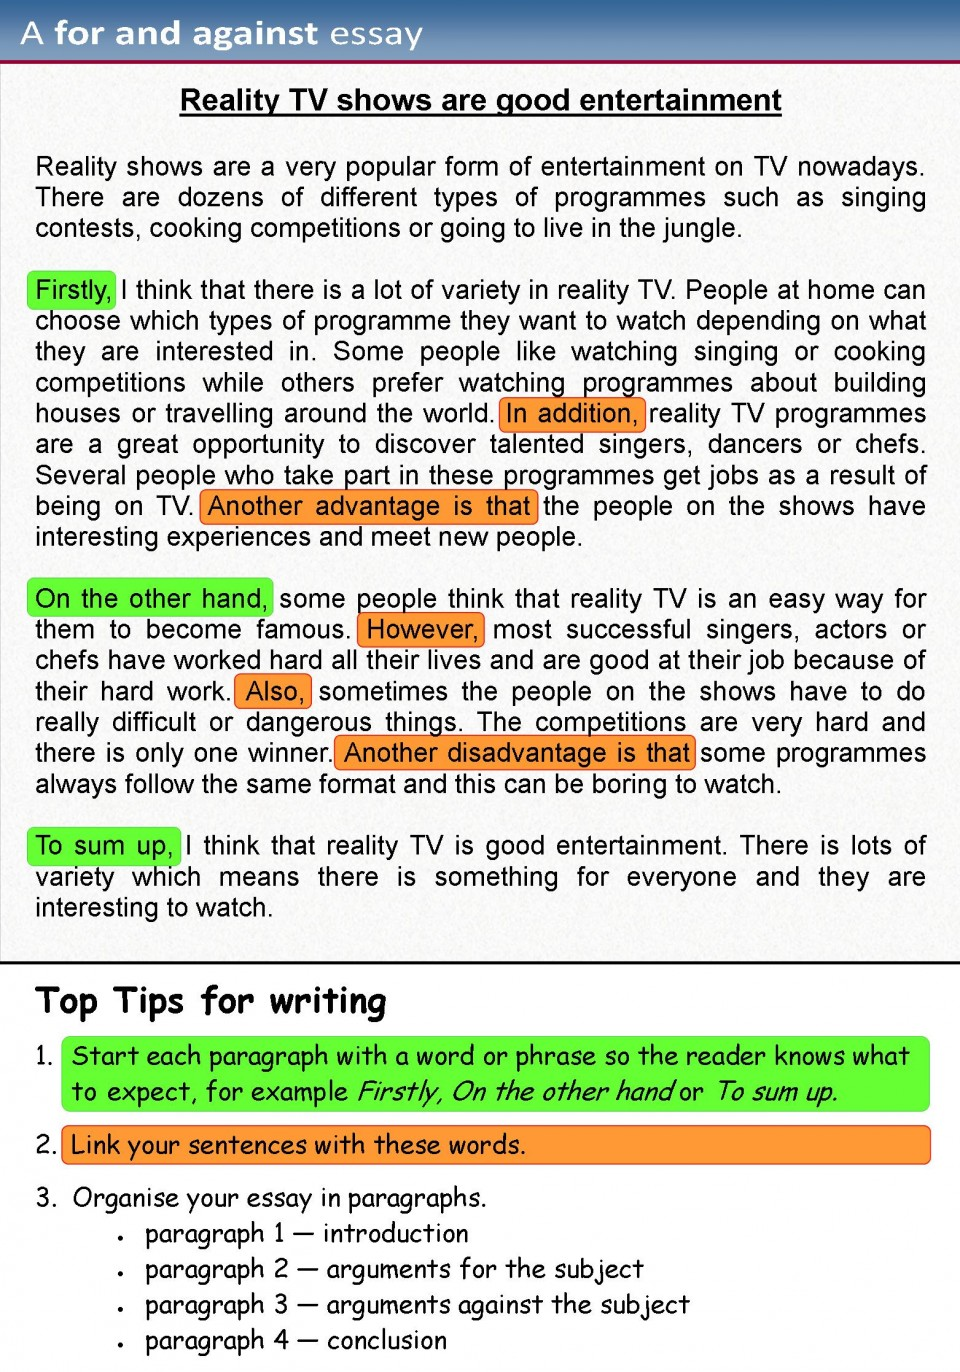 016 For Against Essay 1 Funny Essays Stupendous Topics Written By Students College 960